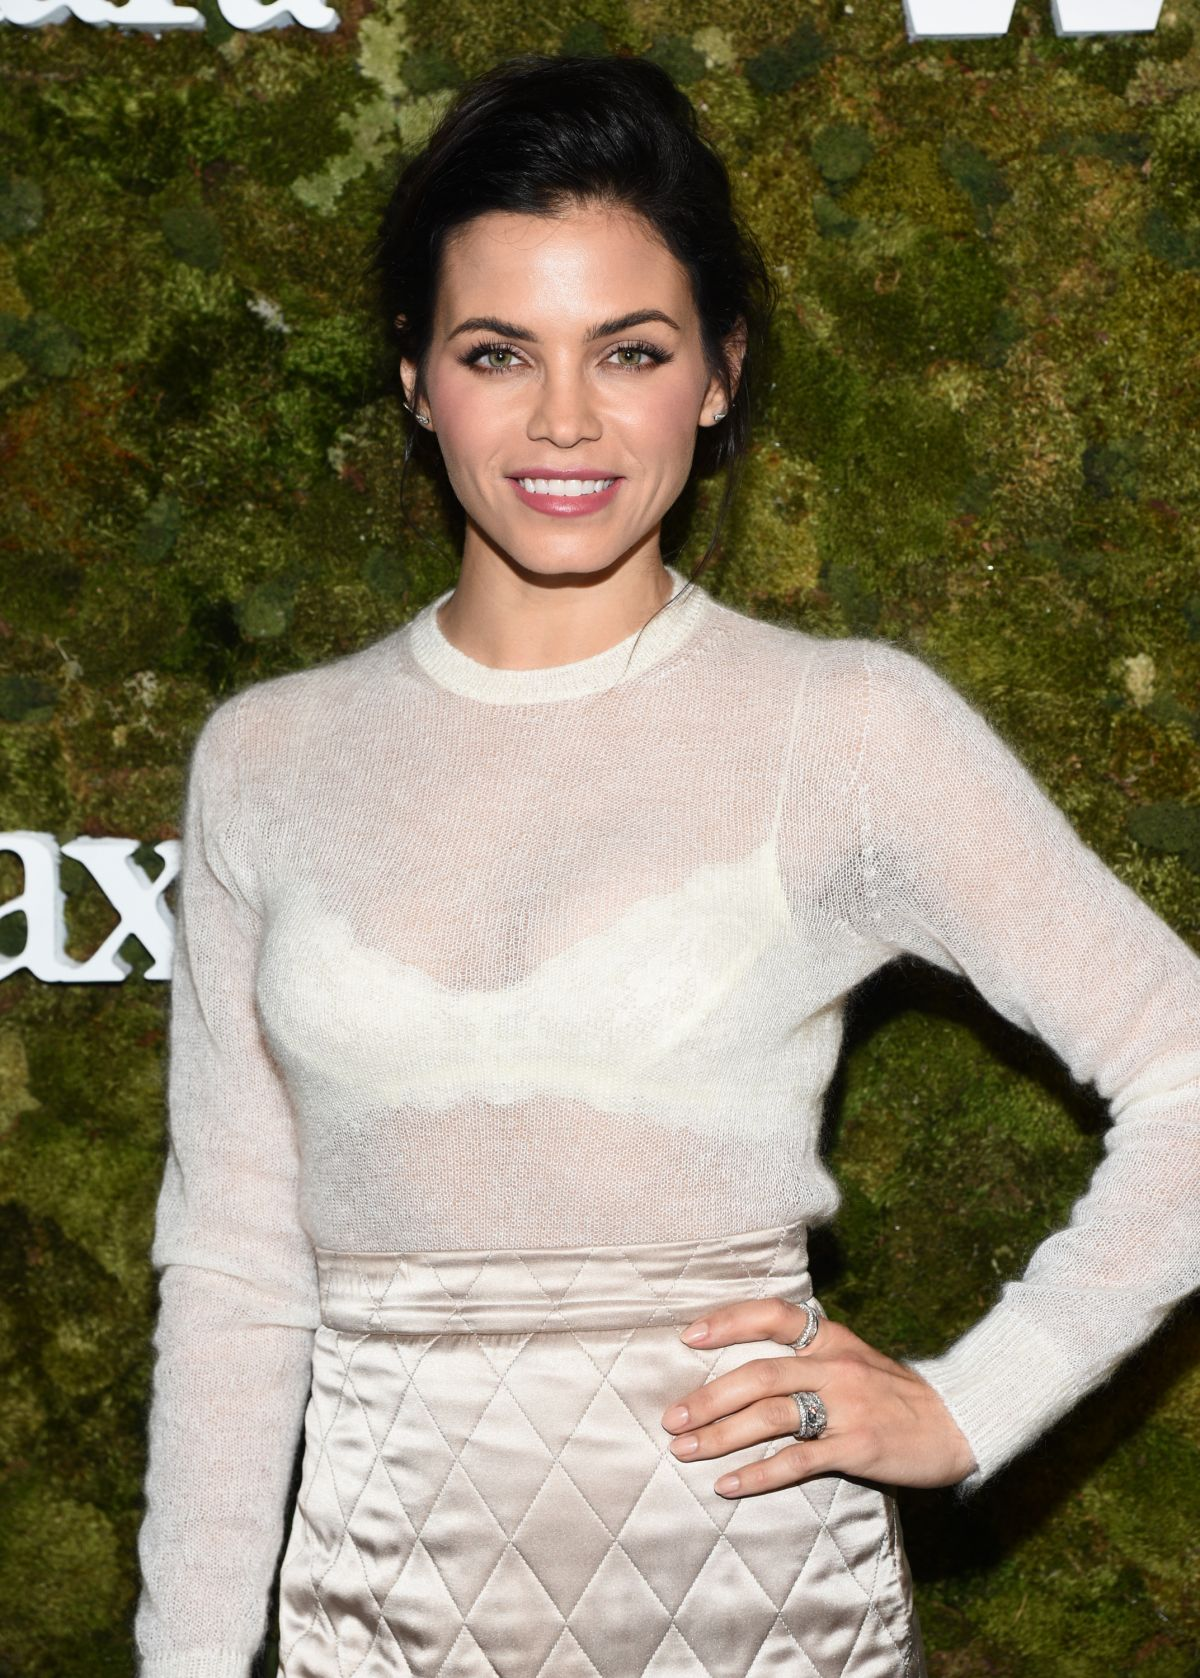 JENNA DEWAN at Max Mara Women in Film Face of the Future Award in Hollywood